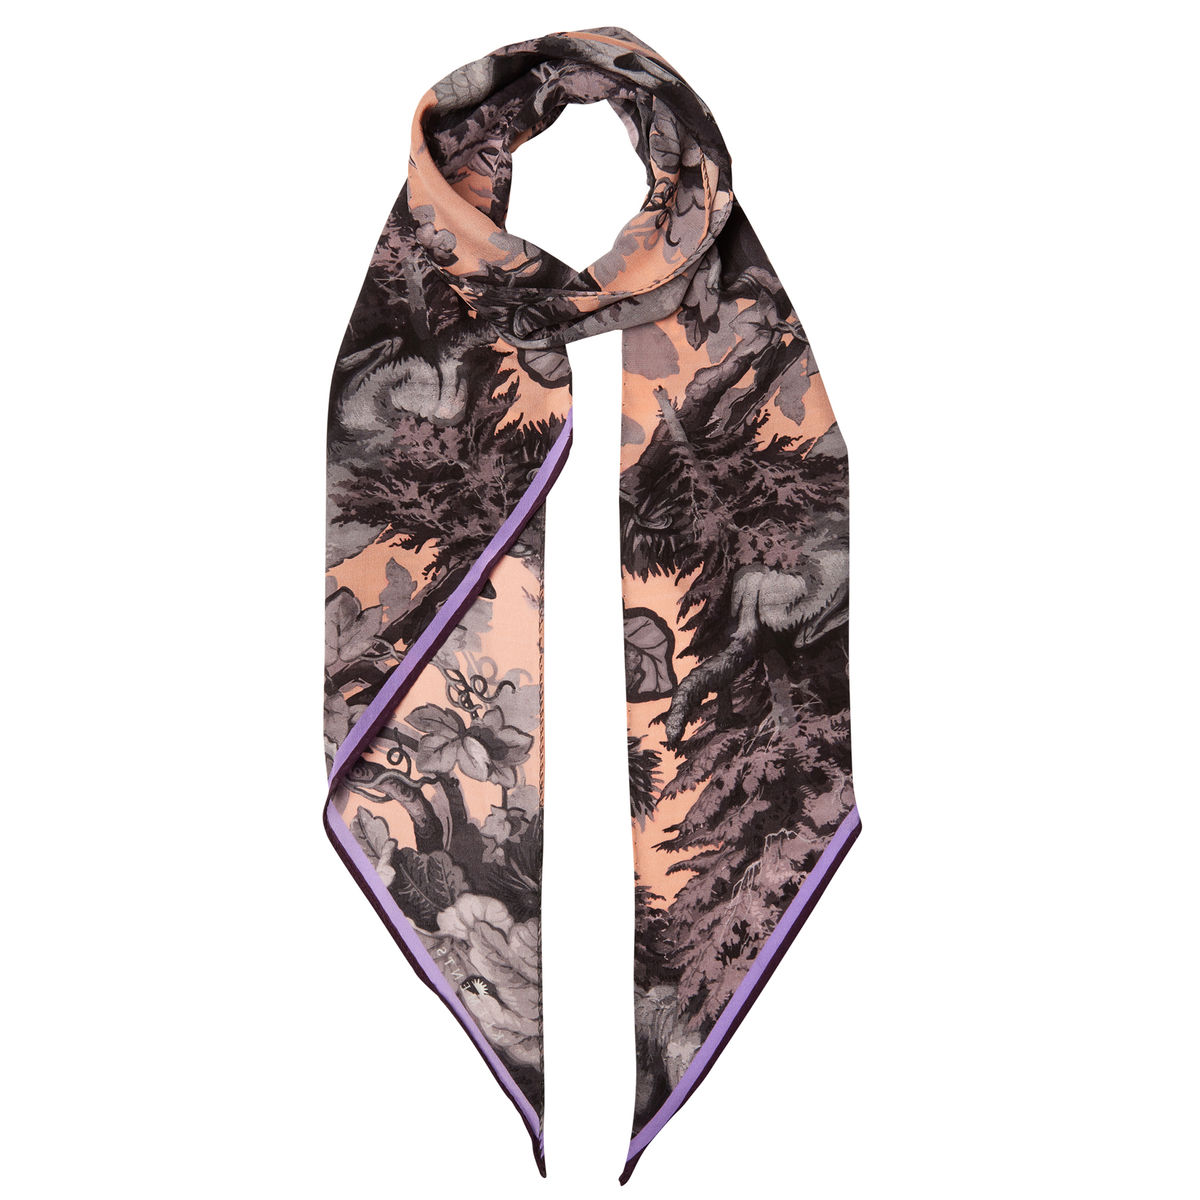 Razor scarf in Białowieża Forest Iced Lilac print - product images  of